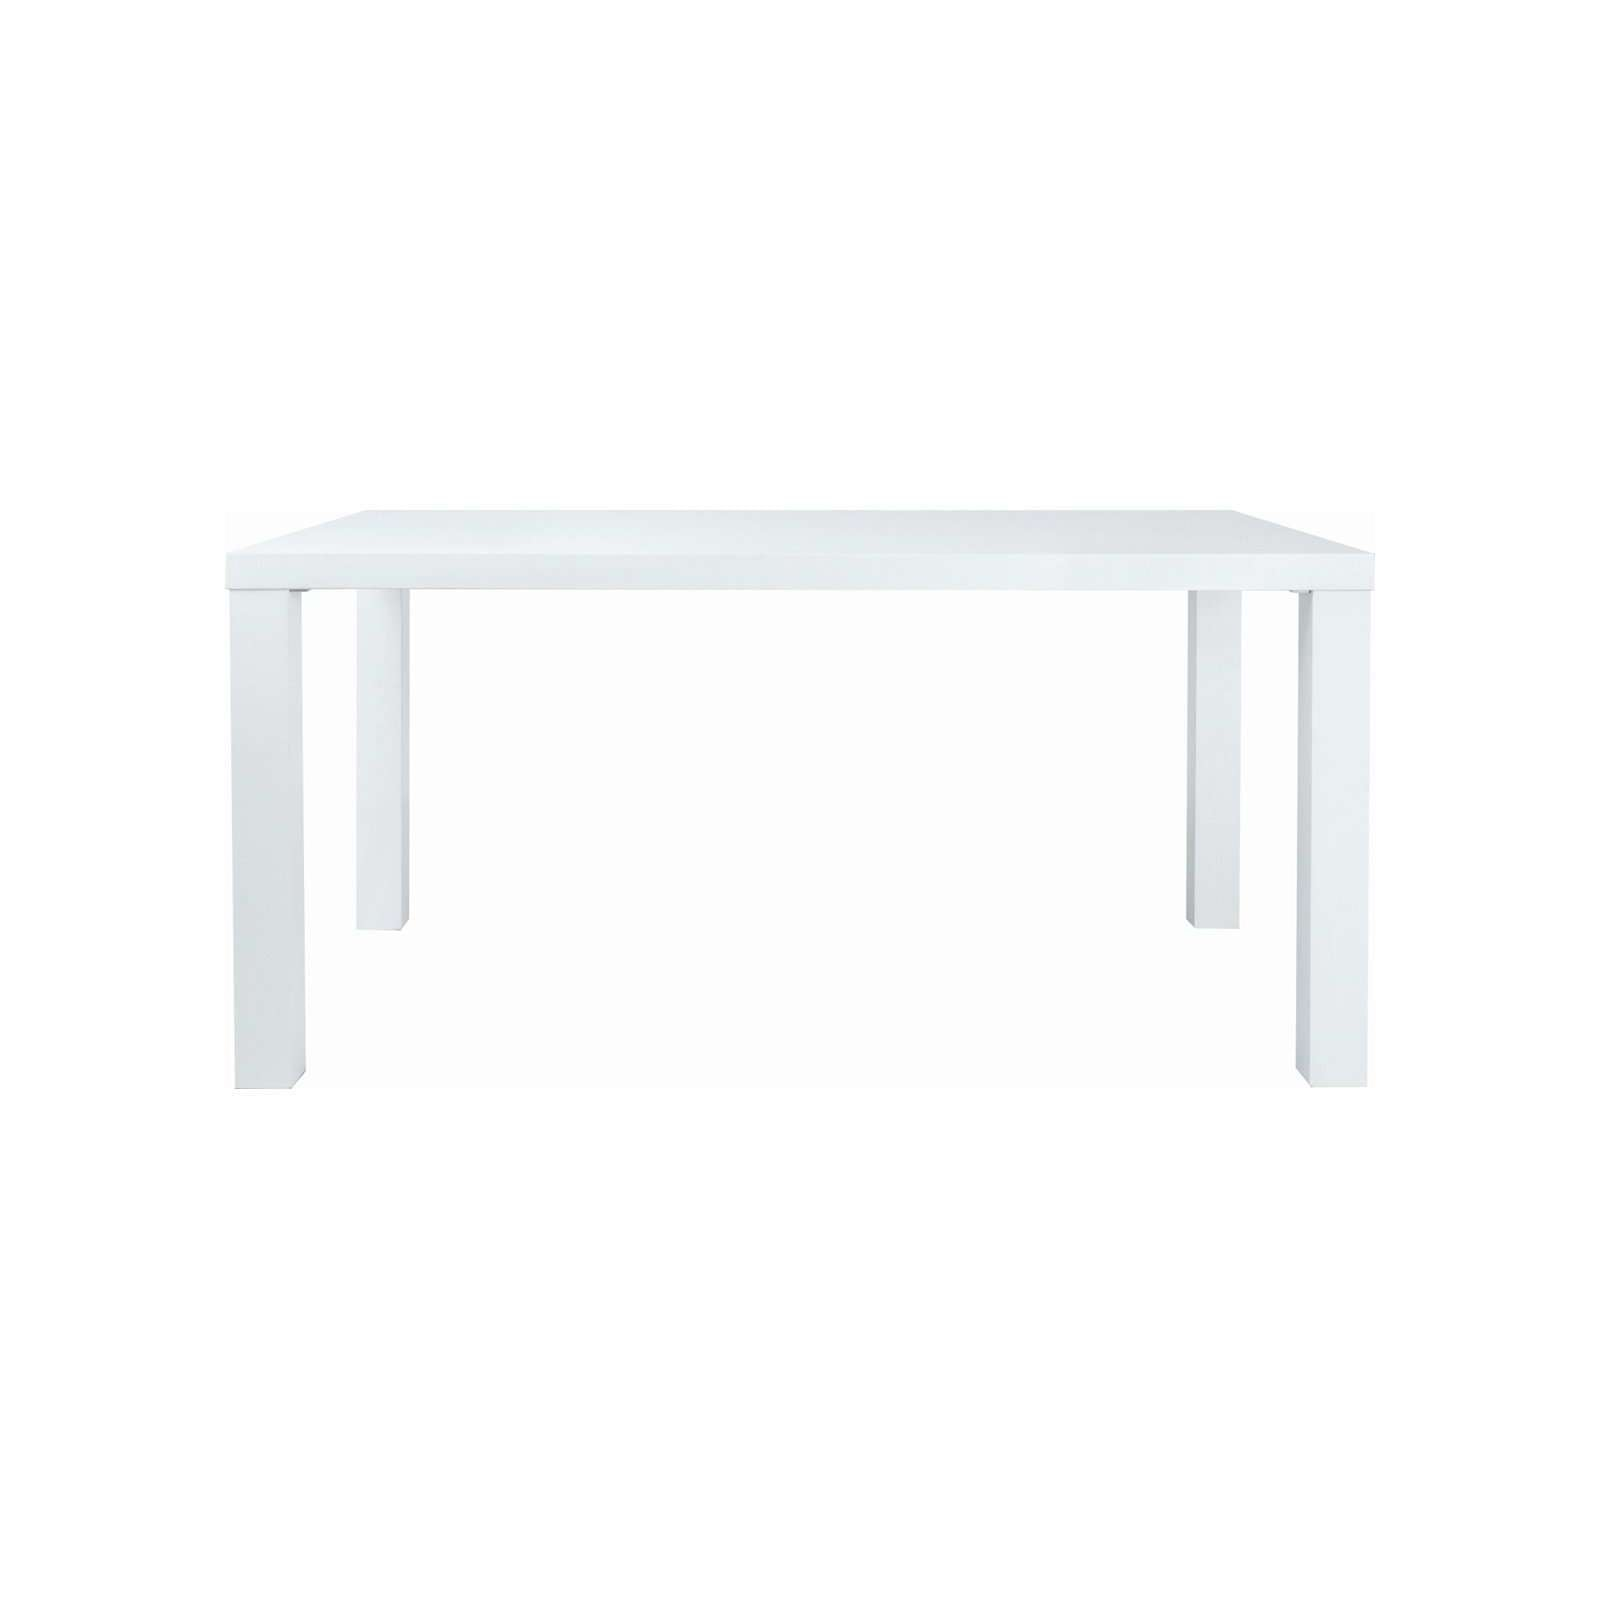 BRENT 1.5m Table in White Lacquered with White Lacquered Straight Leg